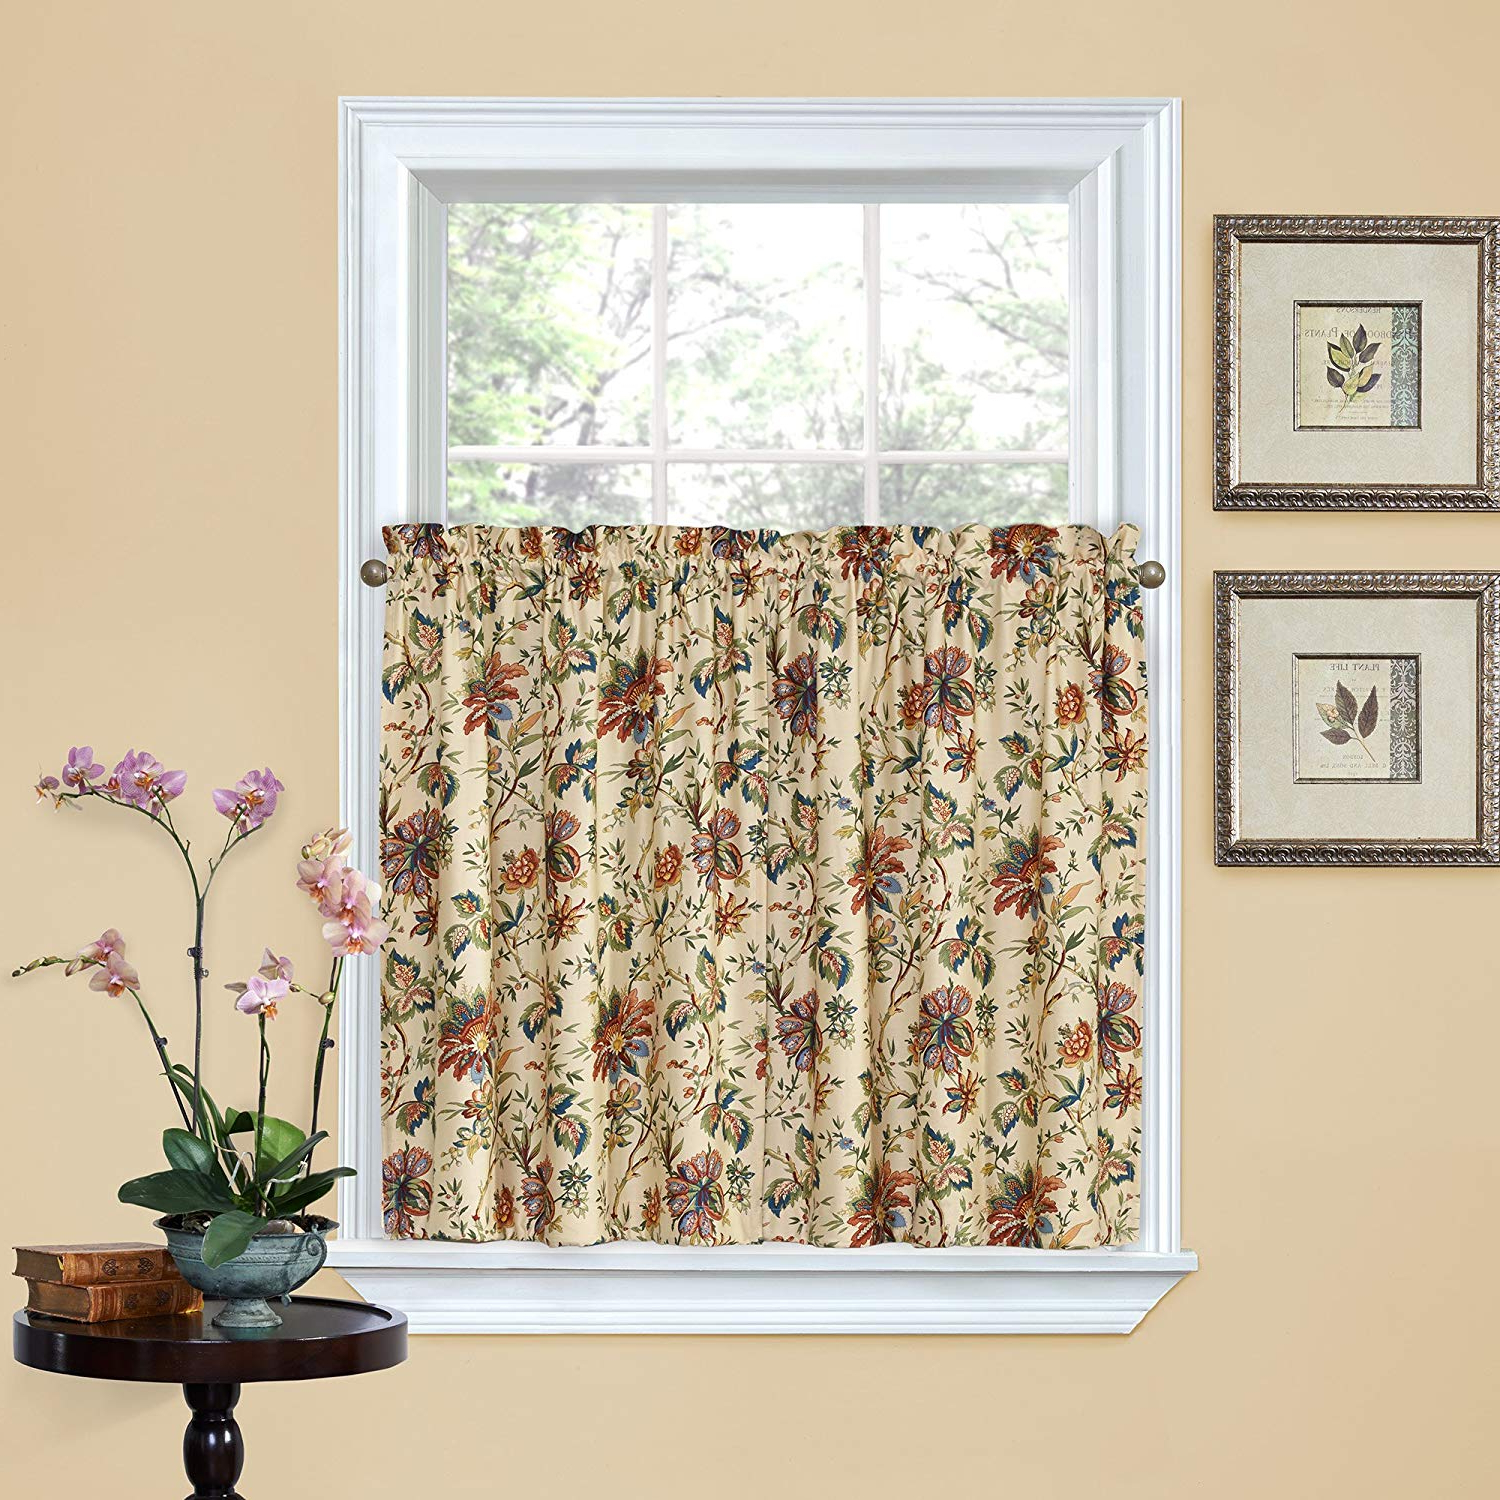 "Waverly Kitchen Curtains Felicite 52"" X 36"" Small Panel Tiers Privacy Window Treatment Pair Bathroom, Living Room, Noir Throughout Current Waverly Felicite Curtain Tiers (View 2 of 20)"